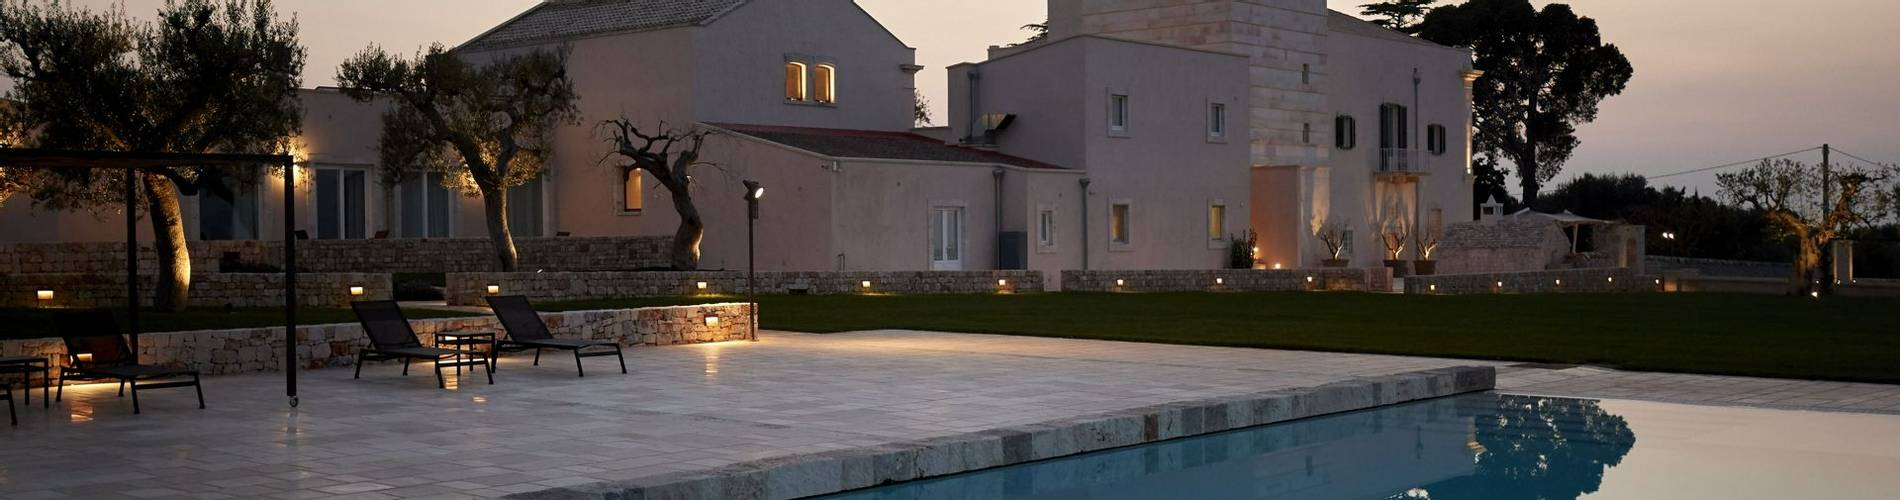 Masseria Creative Resort 7.jpg